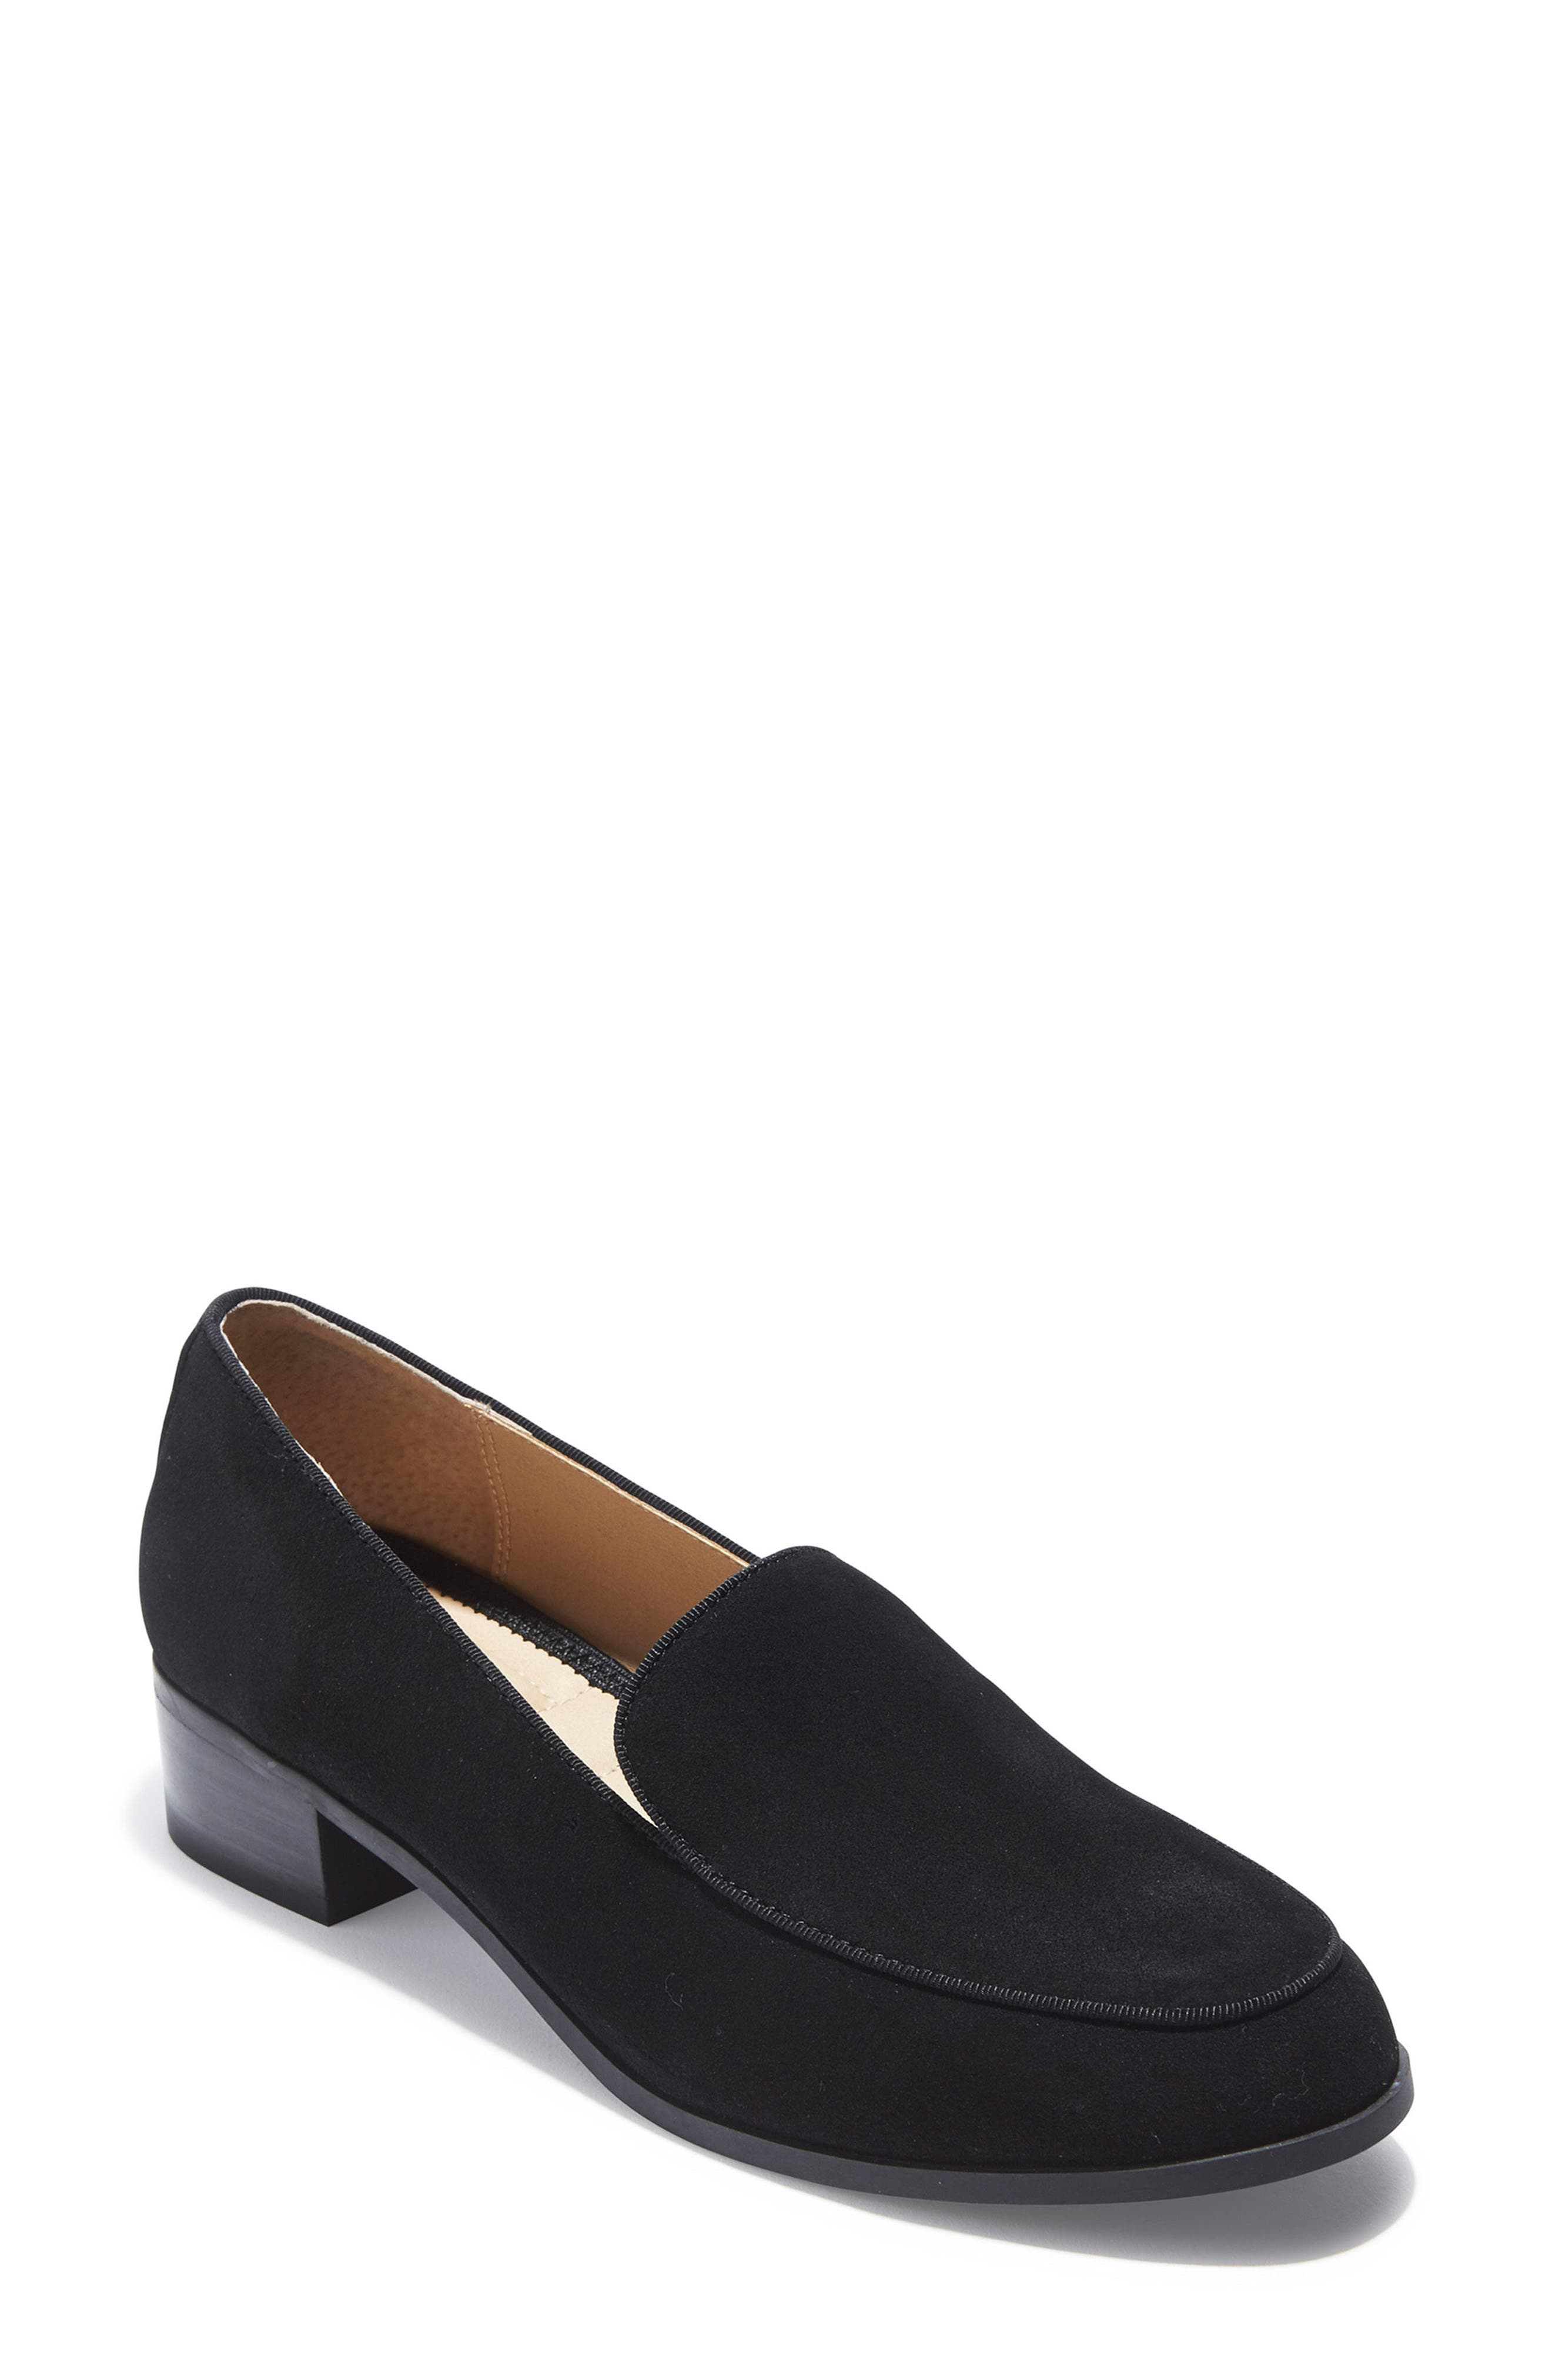 Alternate Image 1 Selected - Me Too Jazzy Loafer (Women)